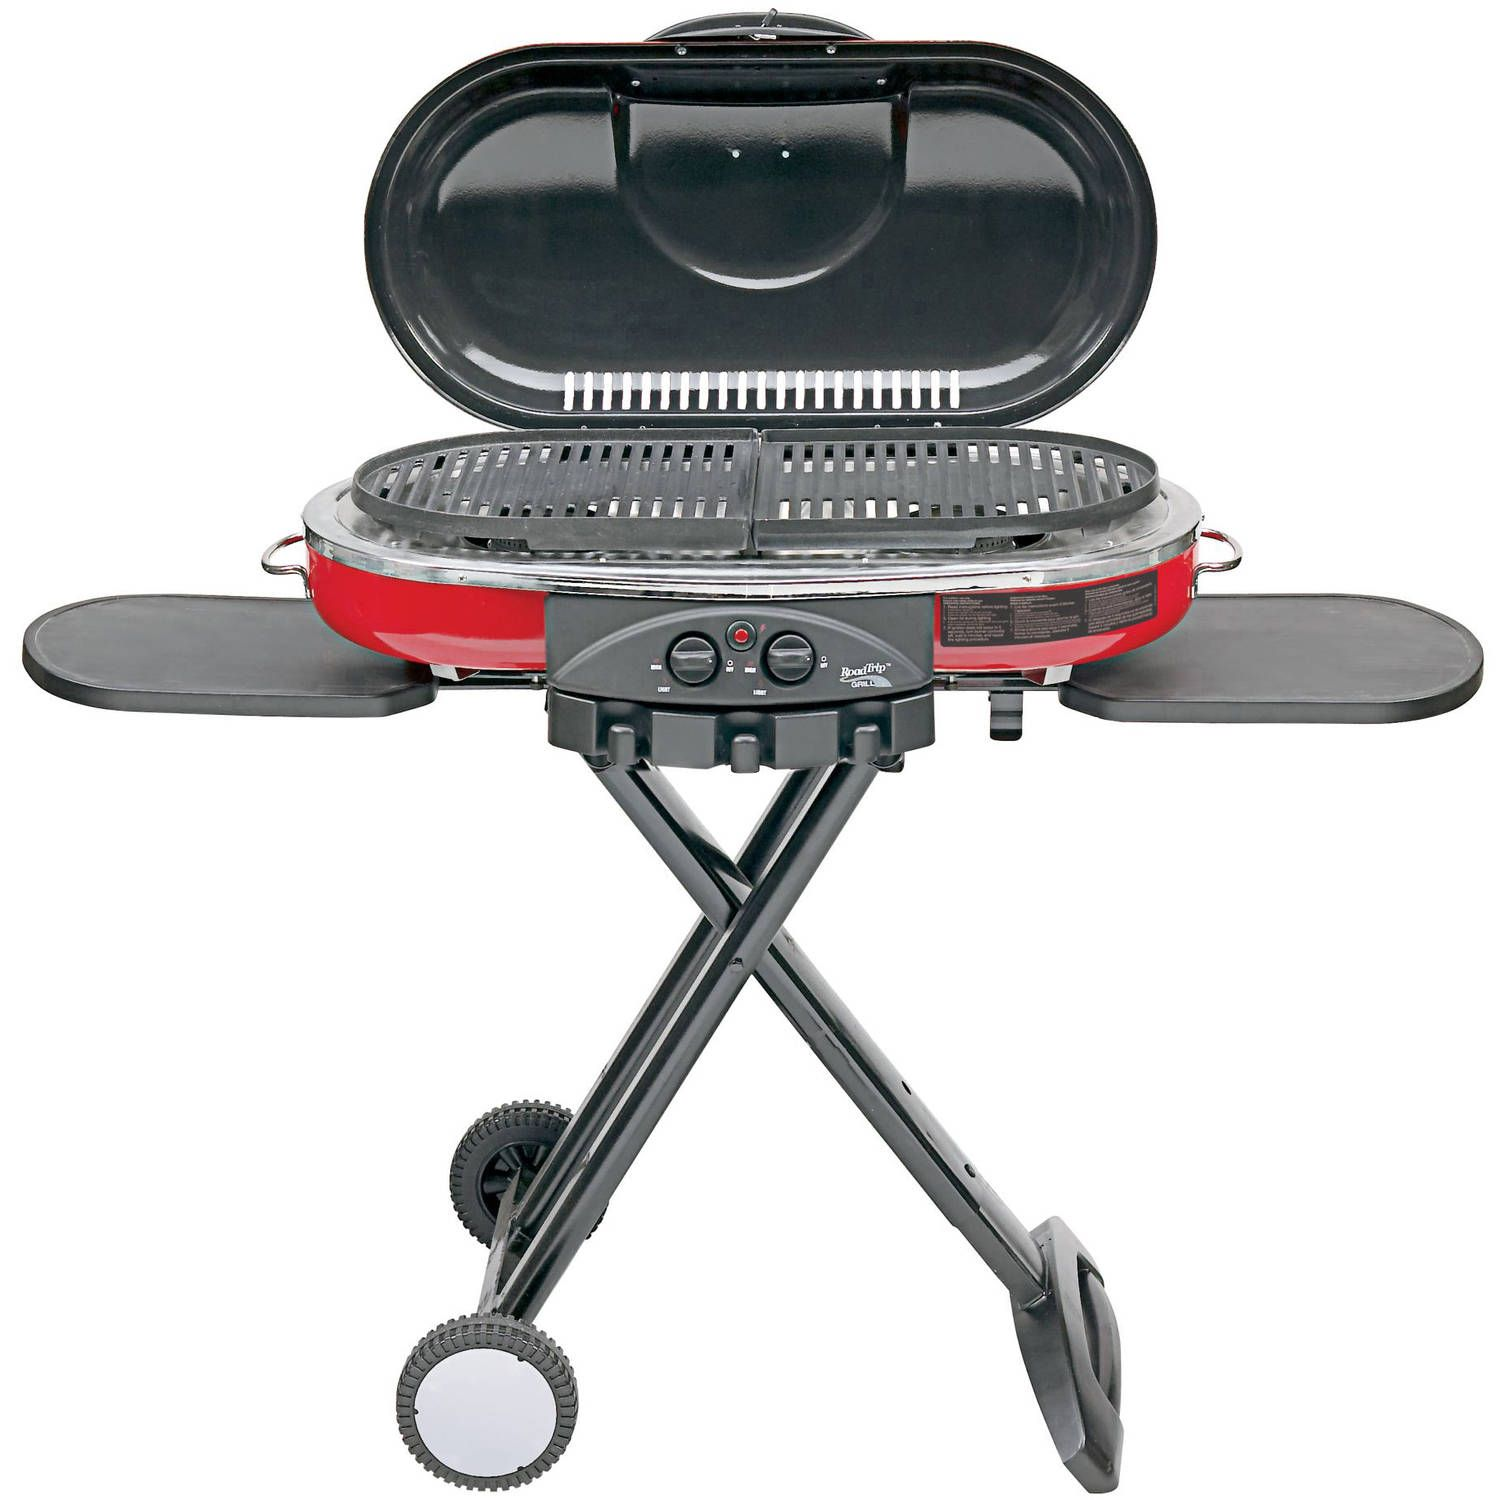 Sports Outdoors Portable Grill Best Gas Grills Grilling